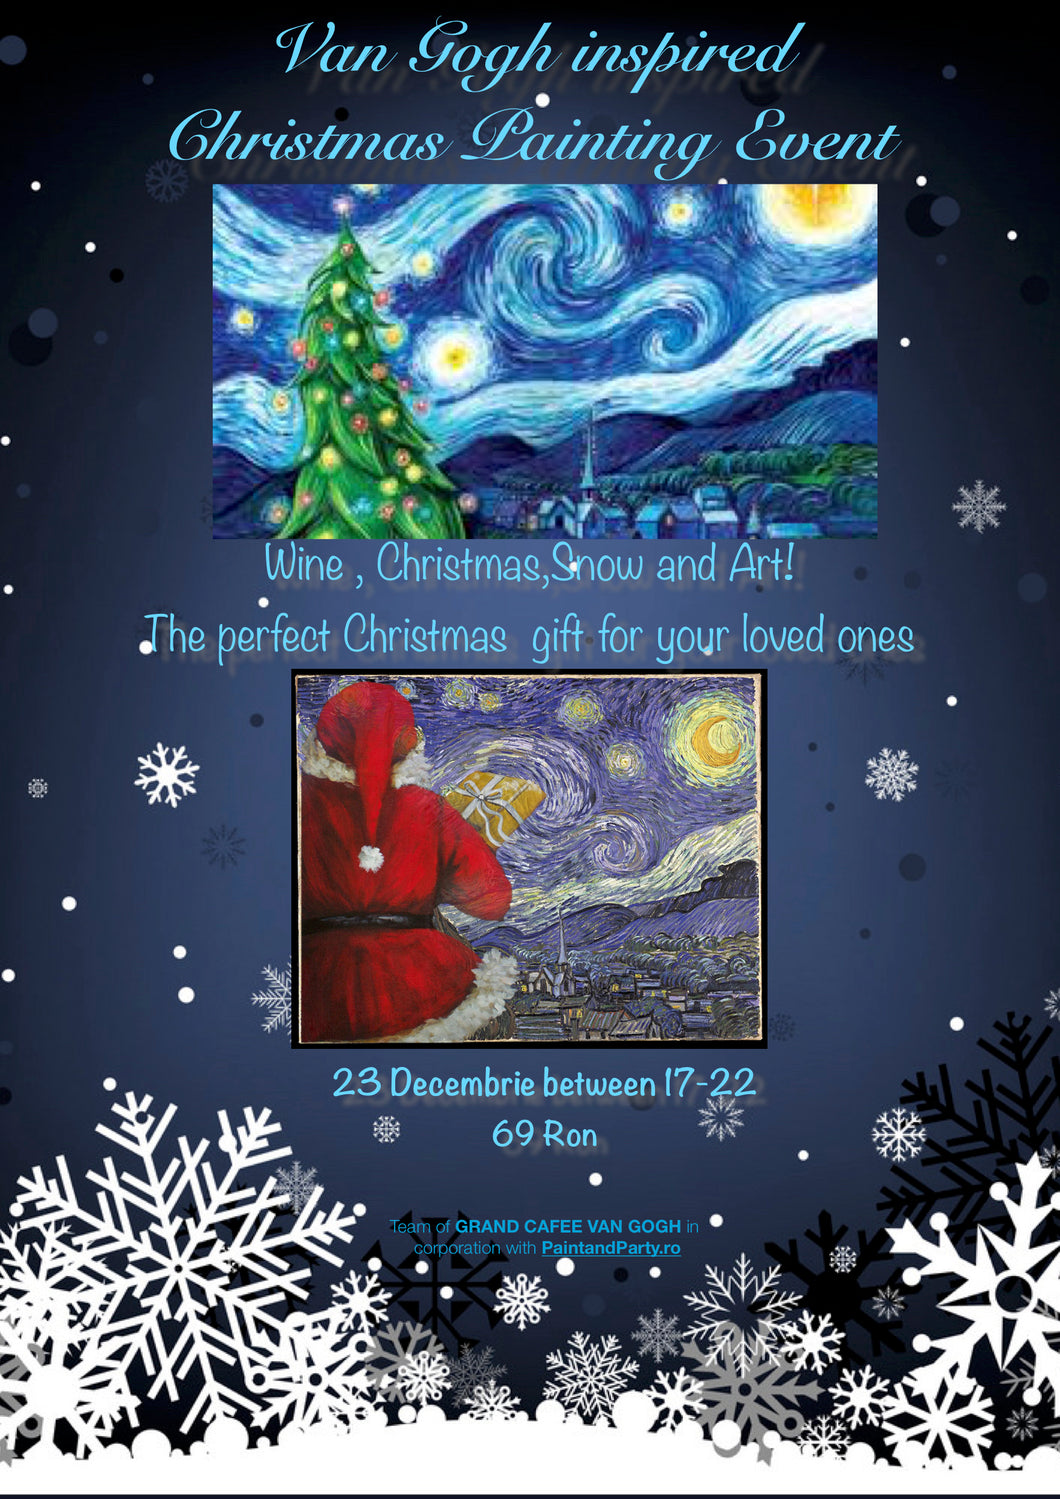 Van Gogh inspired Christmas Painting Event